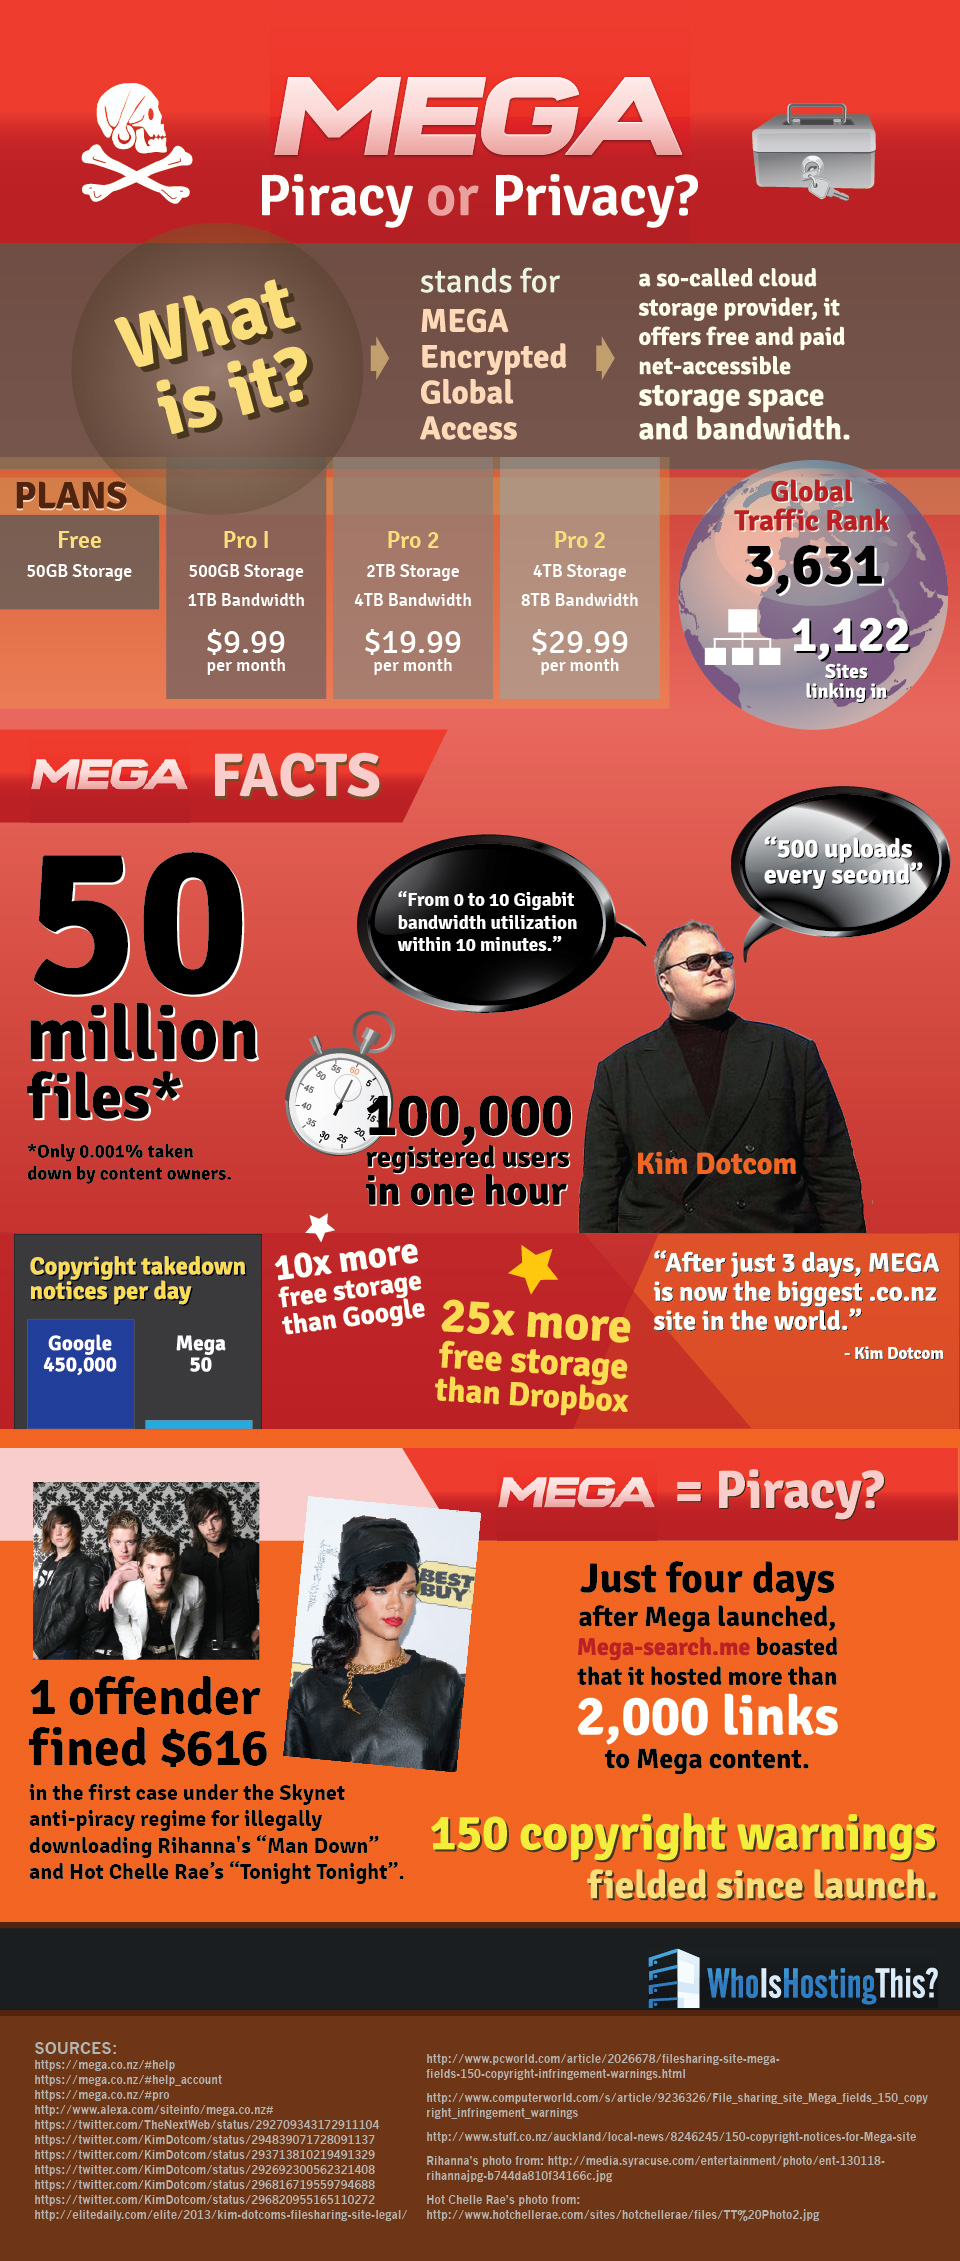 Kim Dotcom and MEGA